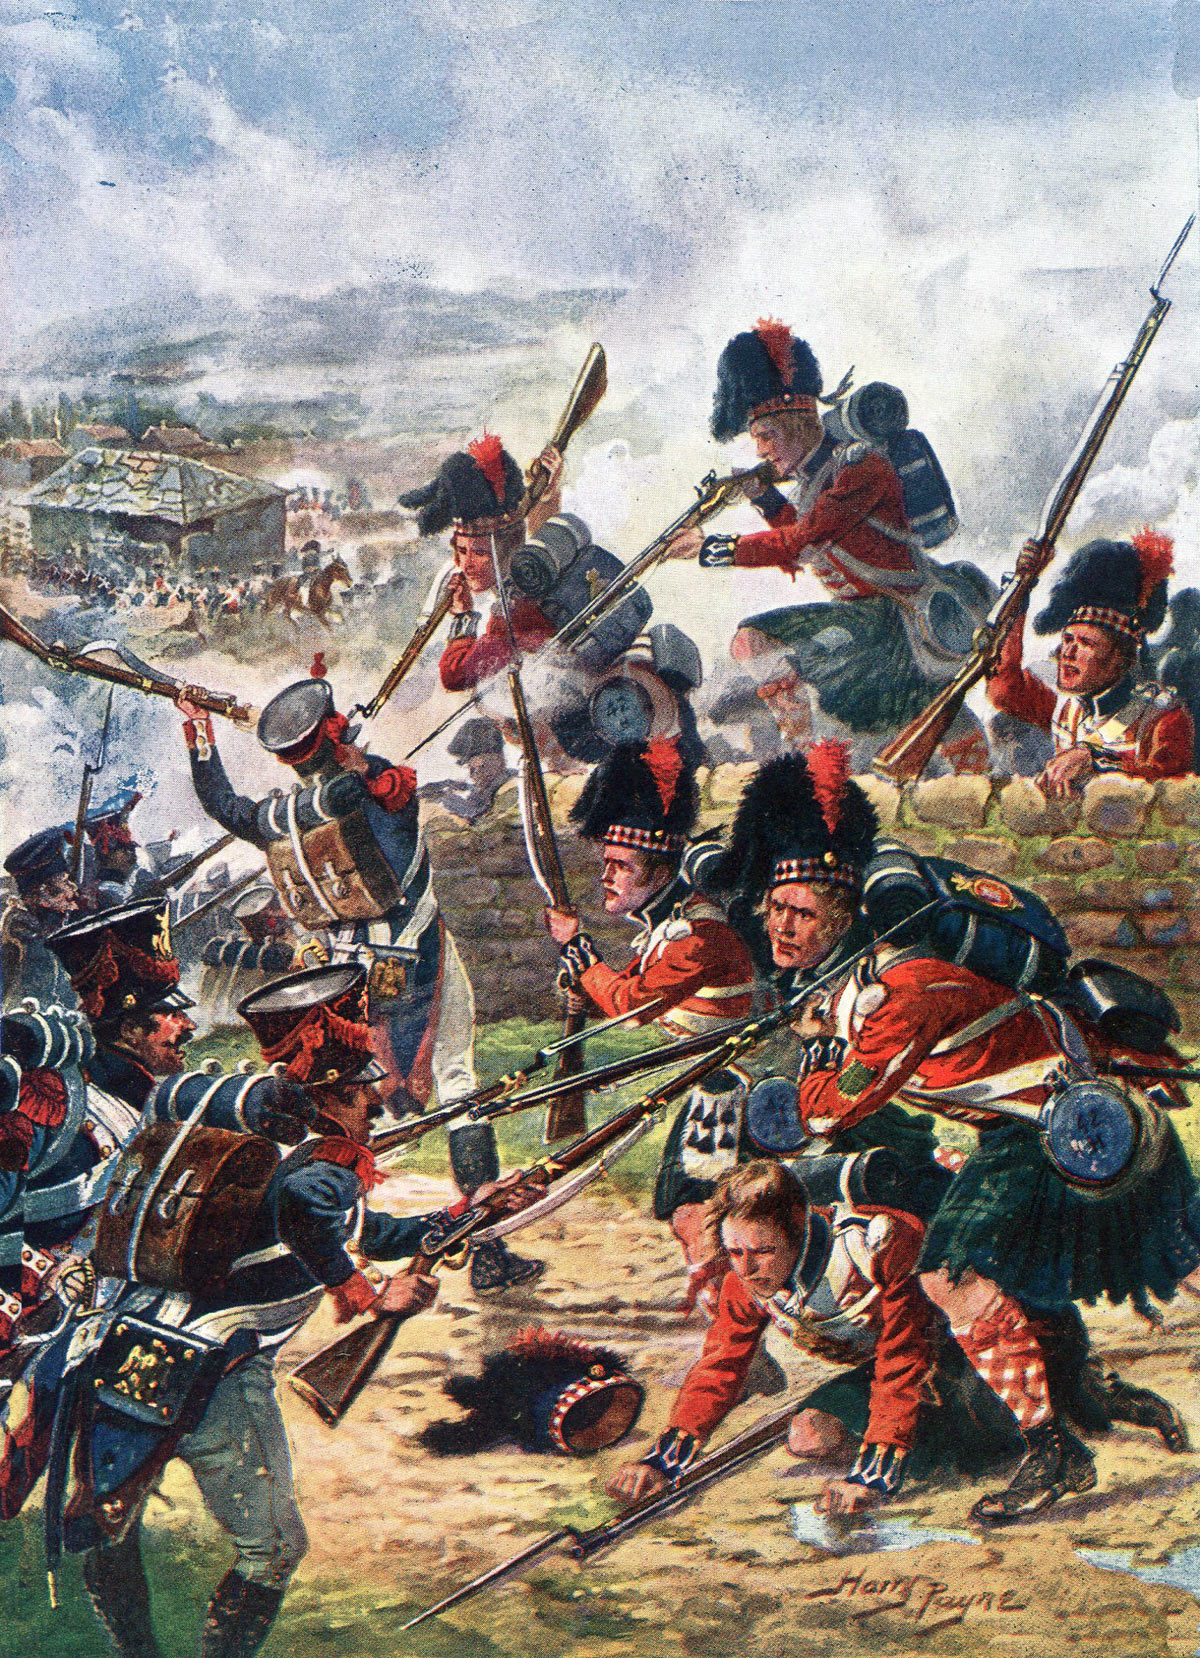 42nd Highlanders the Black Watch at the Battle of Corunna on 16th January 1809 in the Peninsular War: picture by Harry Payne